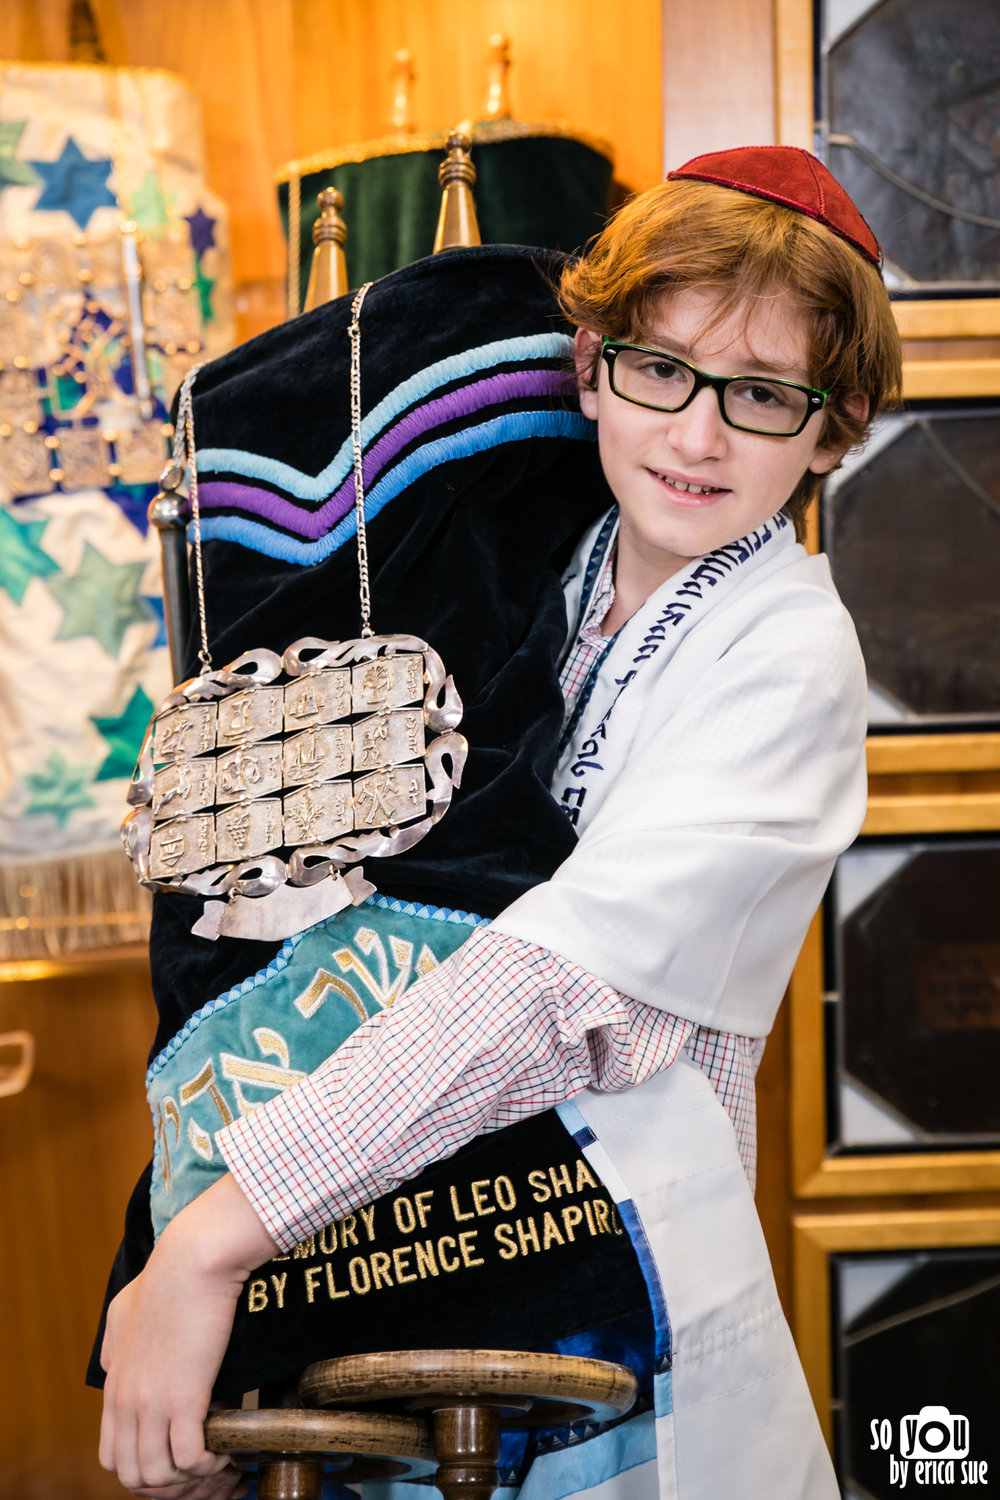 bar-mitzvah-photography-so-you-by-erica-sue-ft-lauderdale-davie-boca-fl-florida-2299.jpg